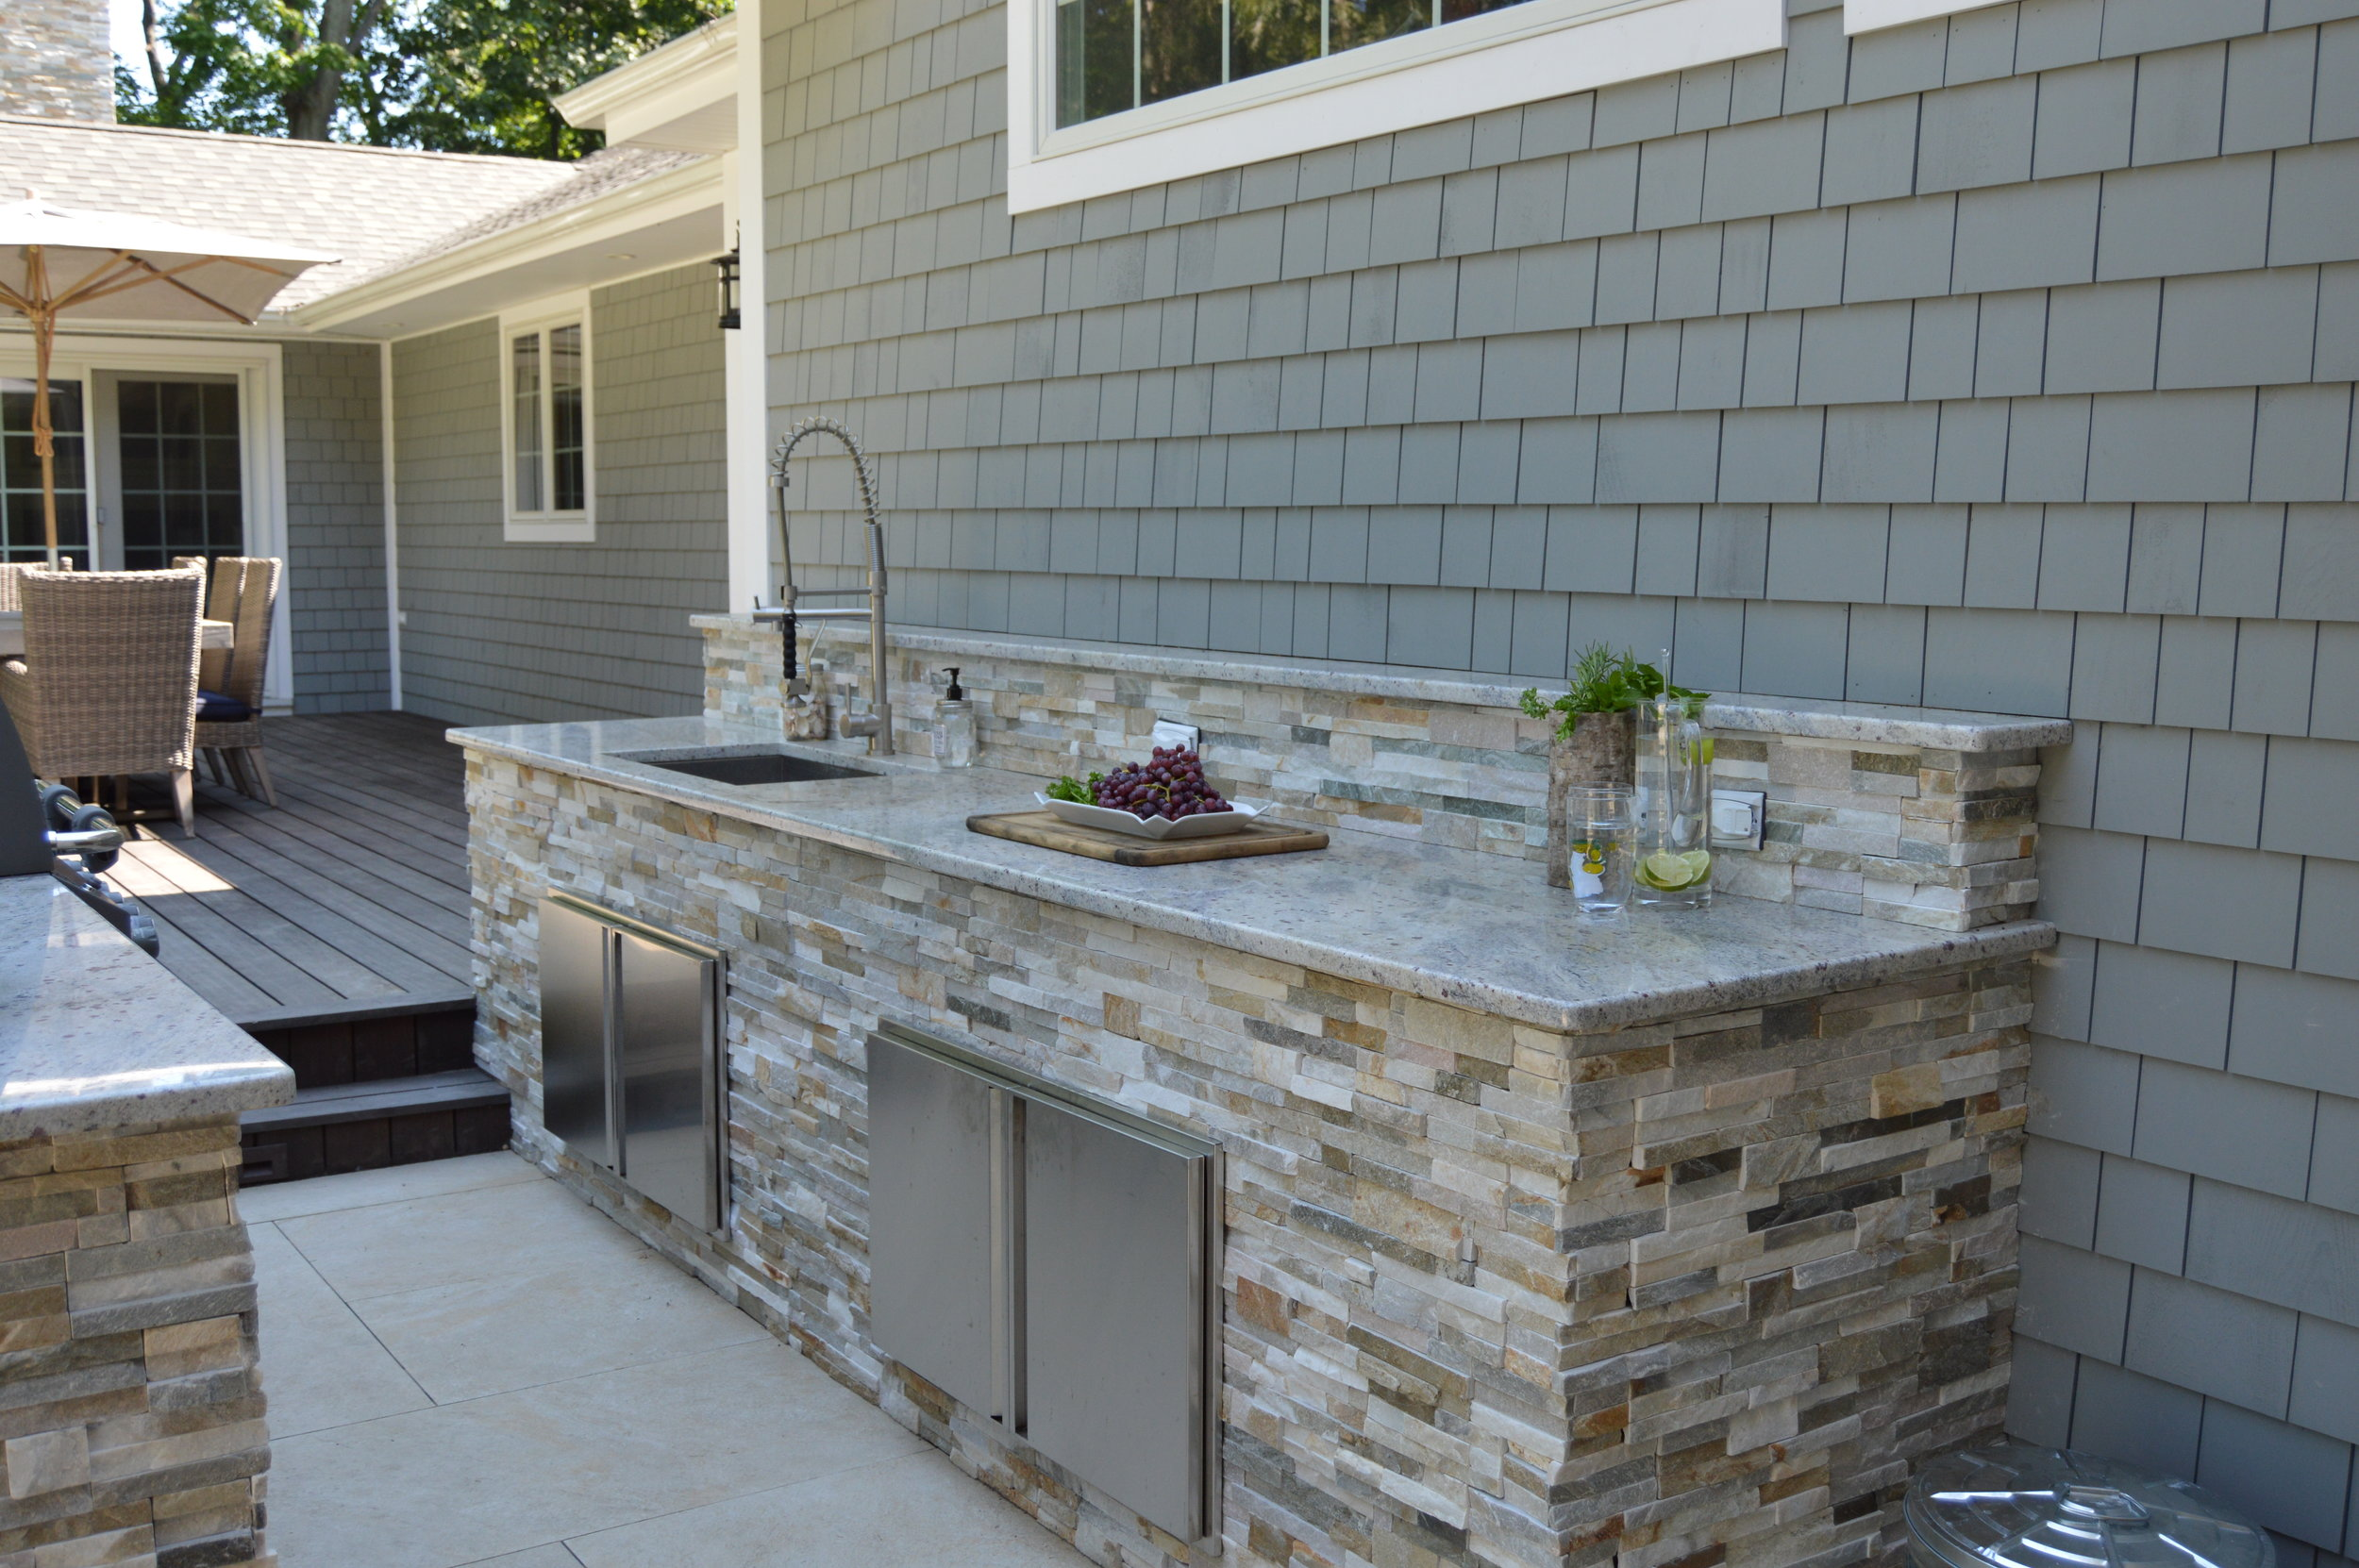 Long Island, NY outdoor kitchen made of natural stone